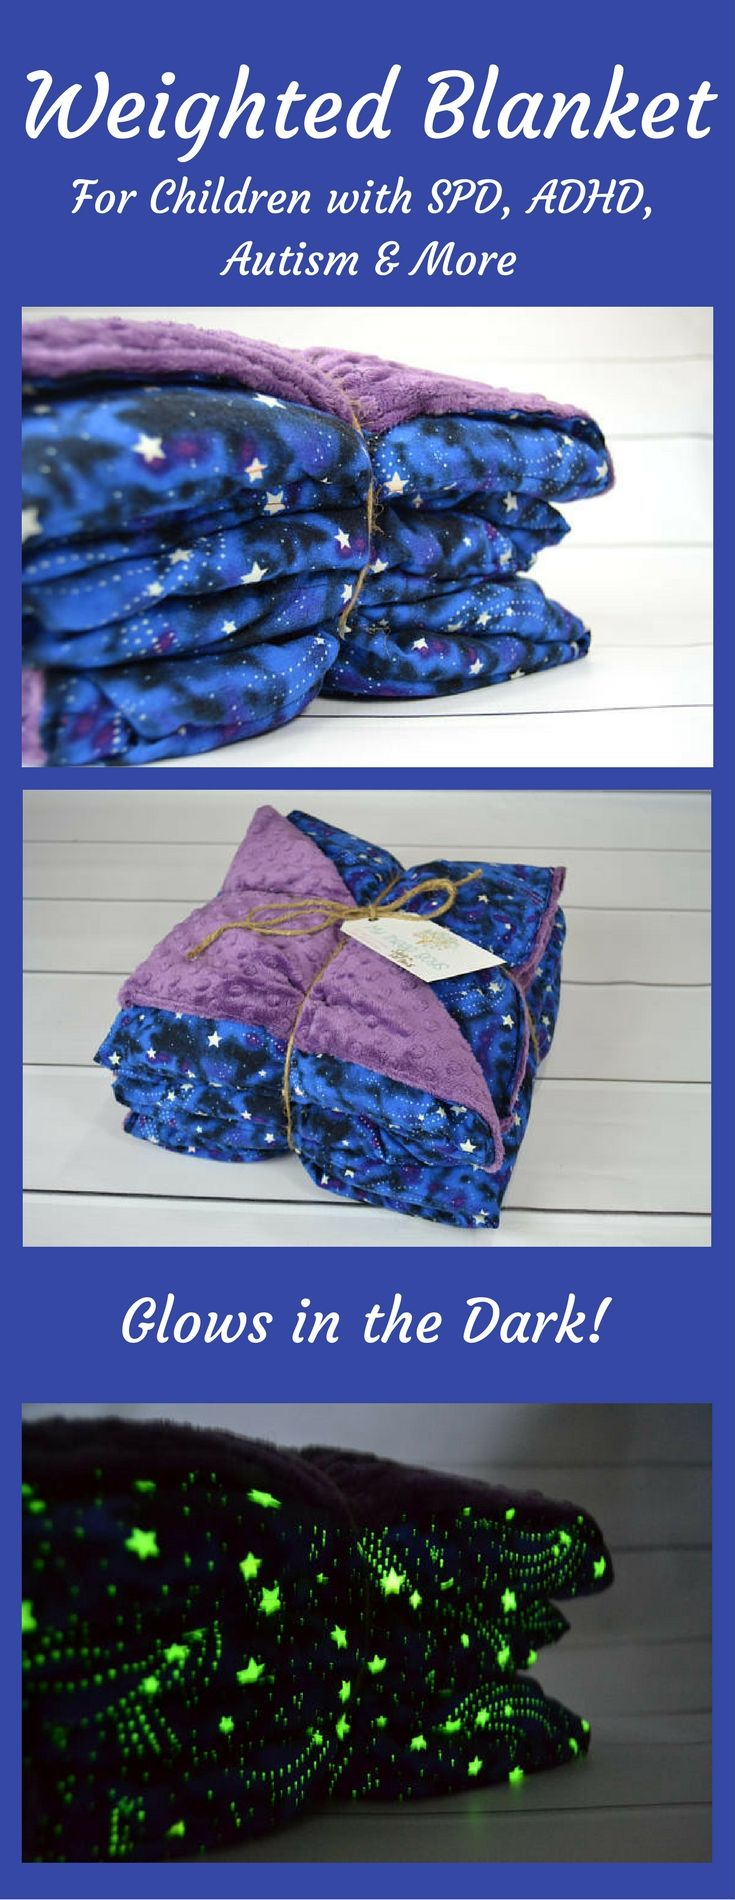 Weighted Blanket for Child - Glow in the Dark Night Sky and Luxurious Complementing Minky (35x50 inches)